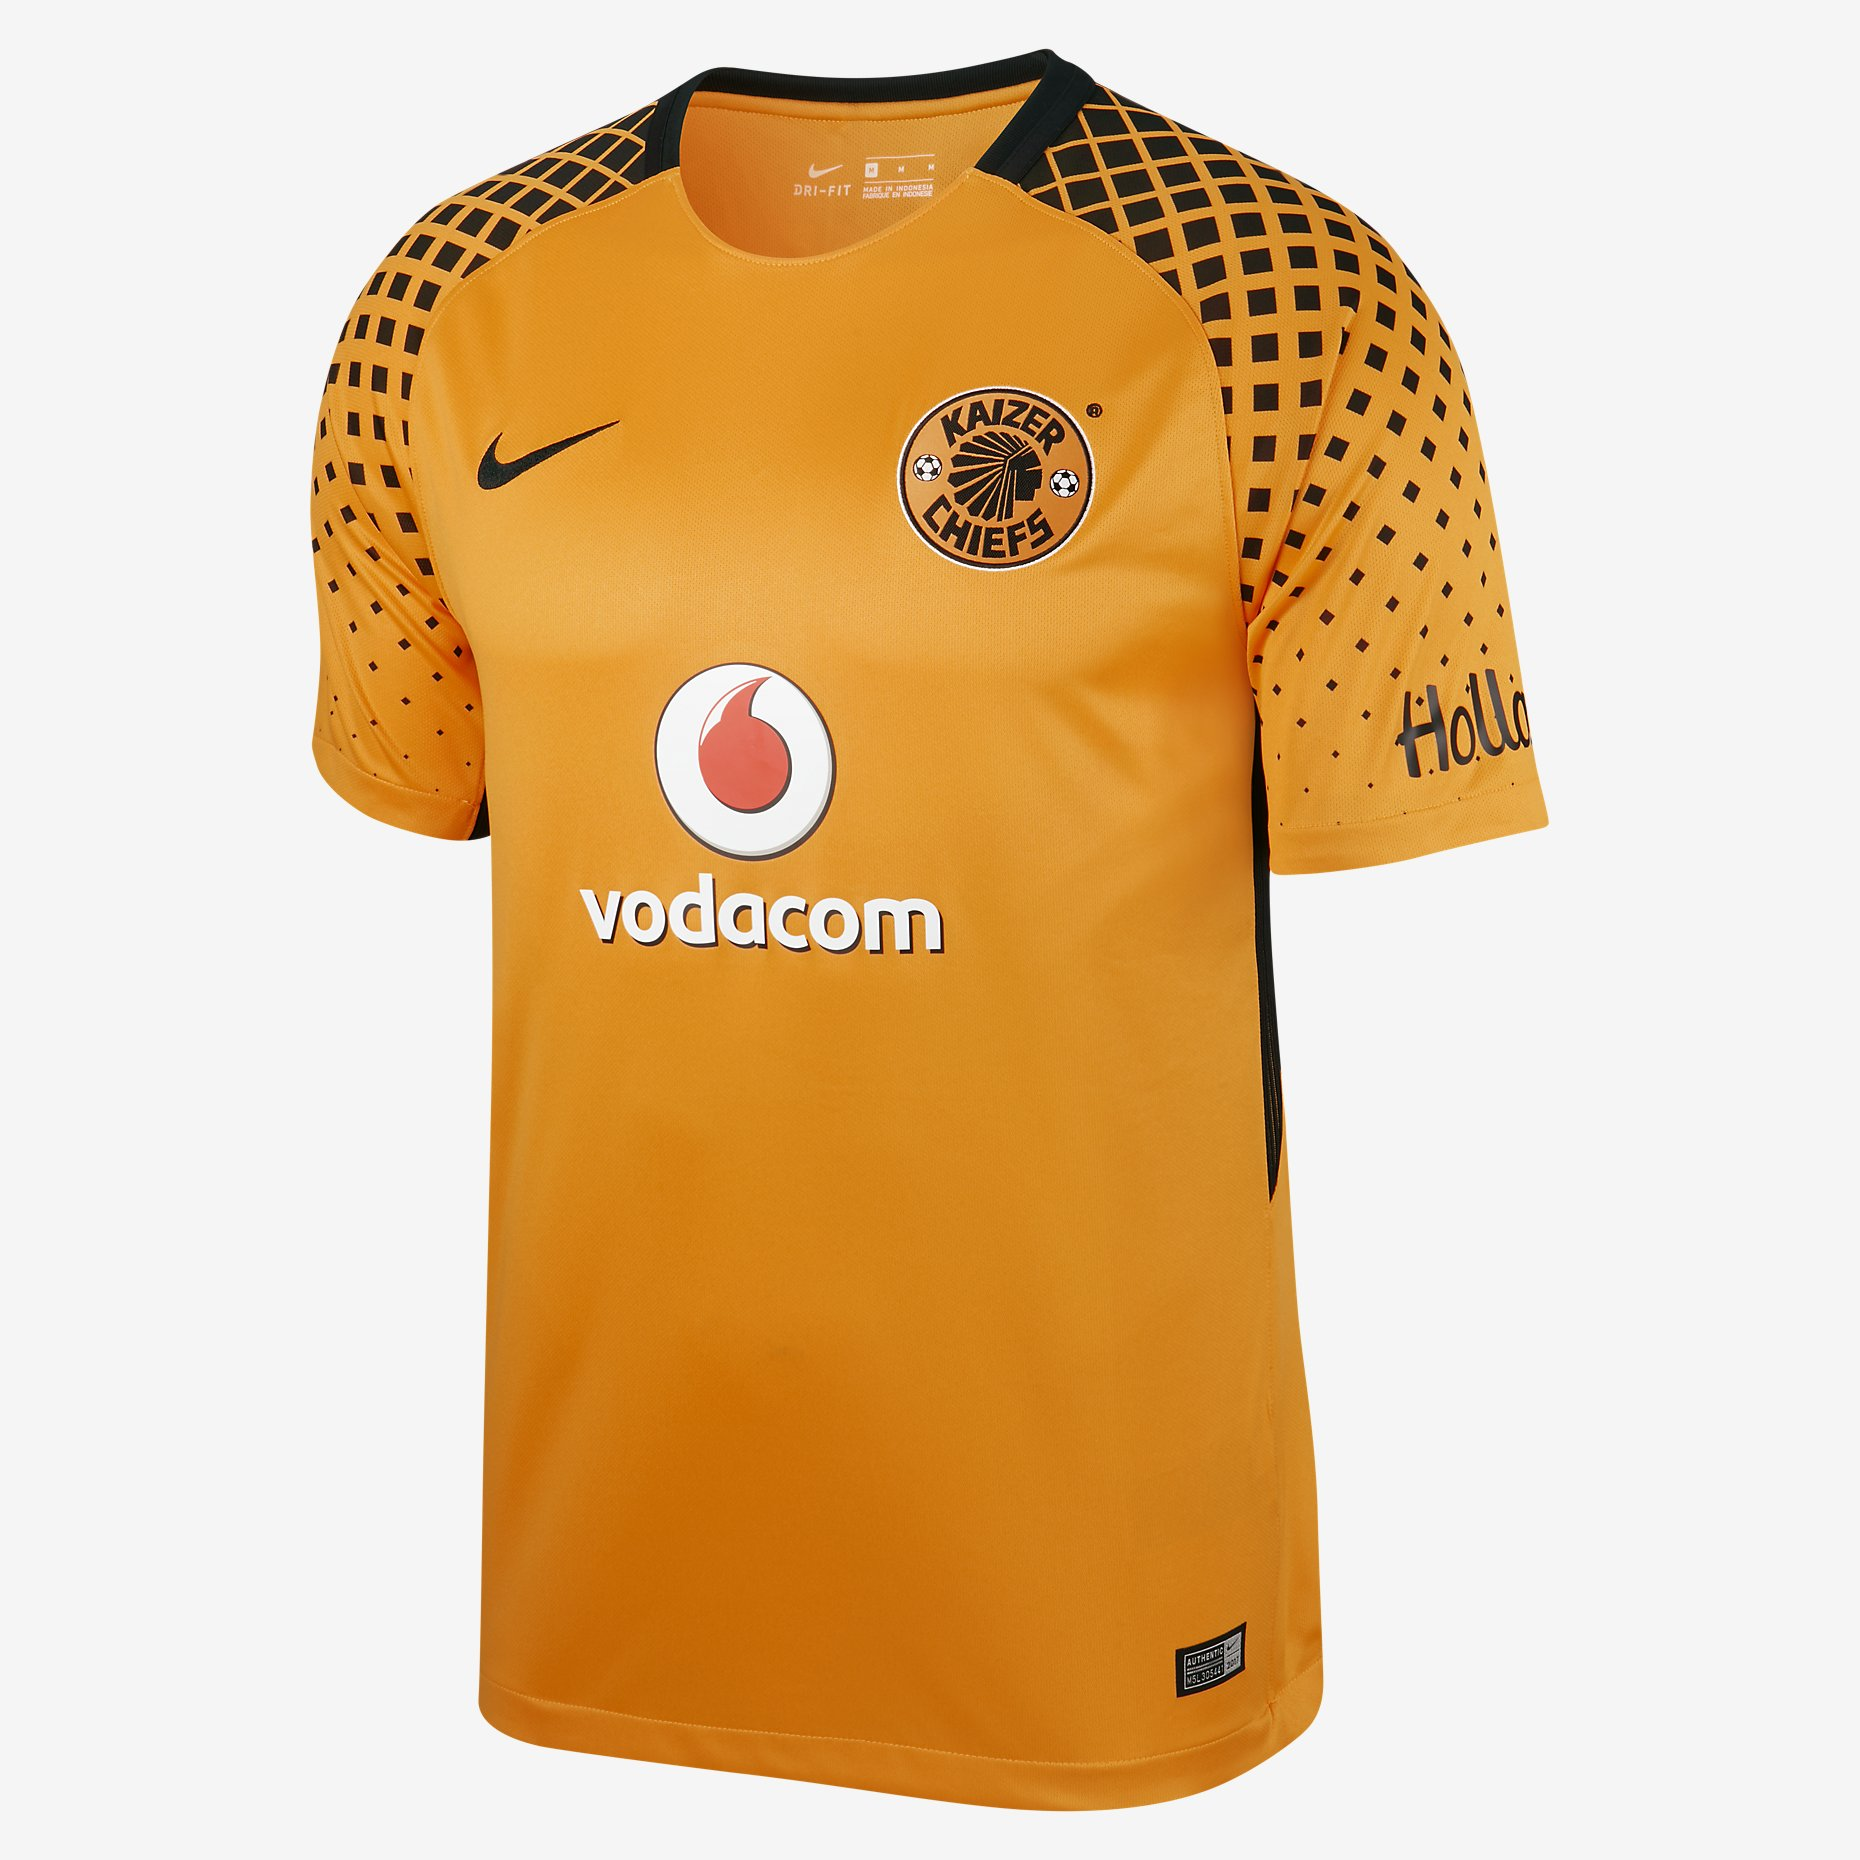 3fc8974f ... Kaizer Chiefs 17/18 Nike Away Kit · Click to enlarge image  kaizer_chiefs_17_18_nike_home_kit_1.jpg ...